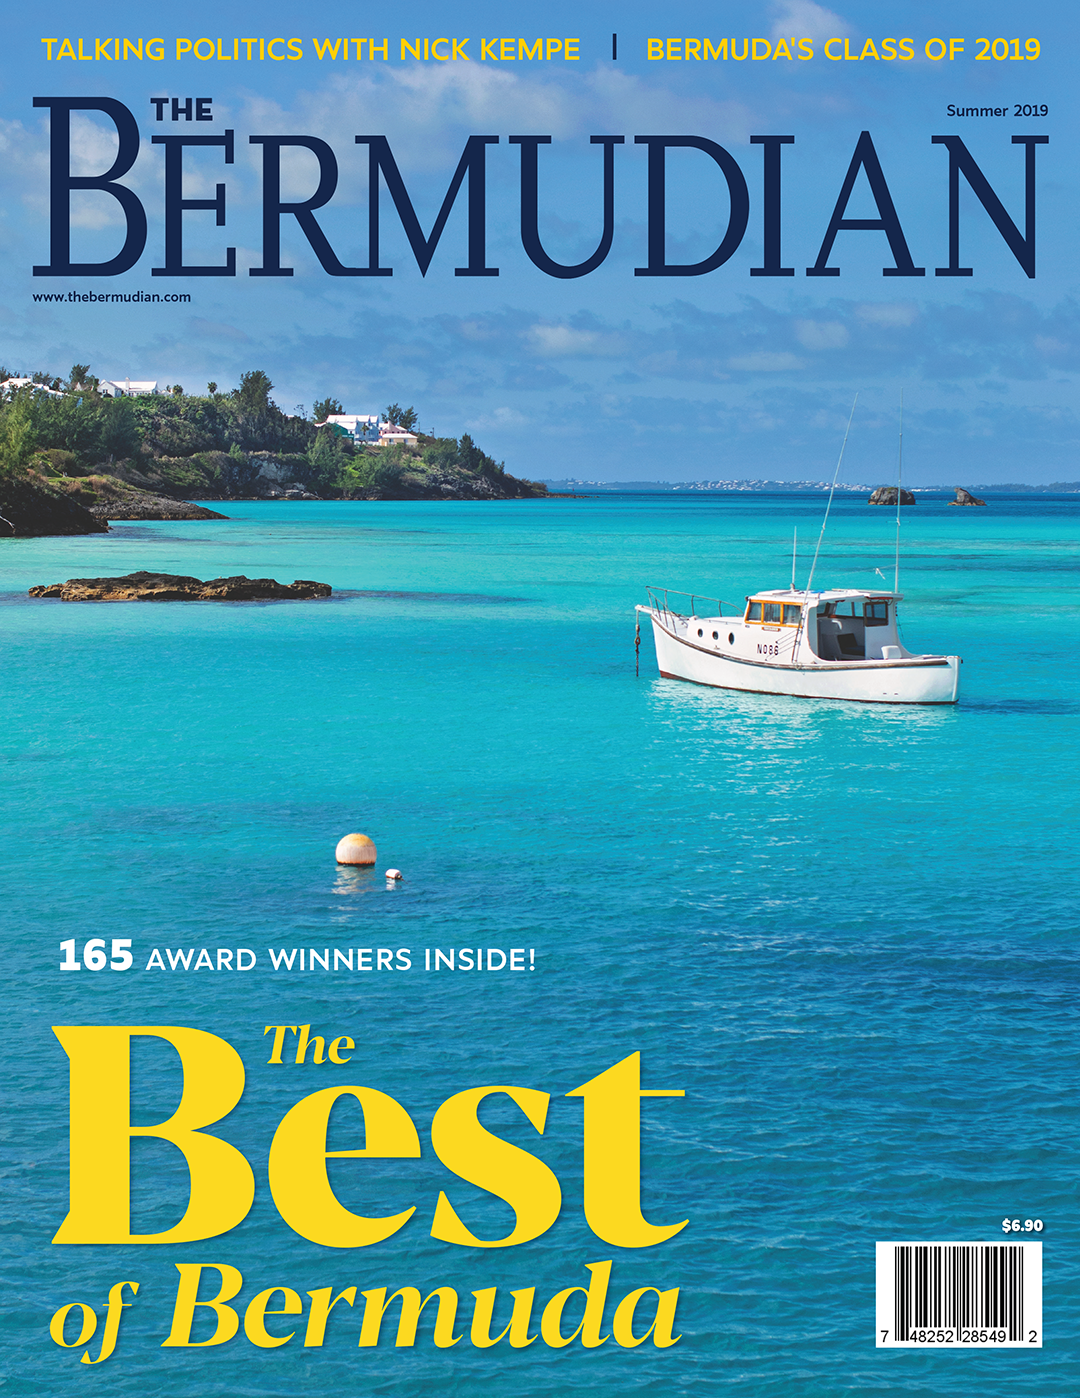 25 Things With - The Bermudian Magazine